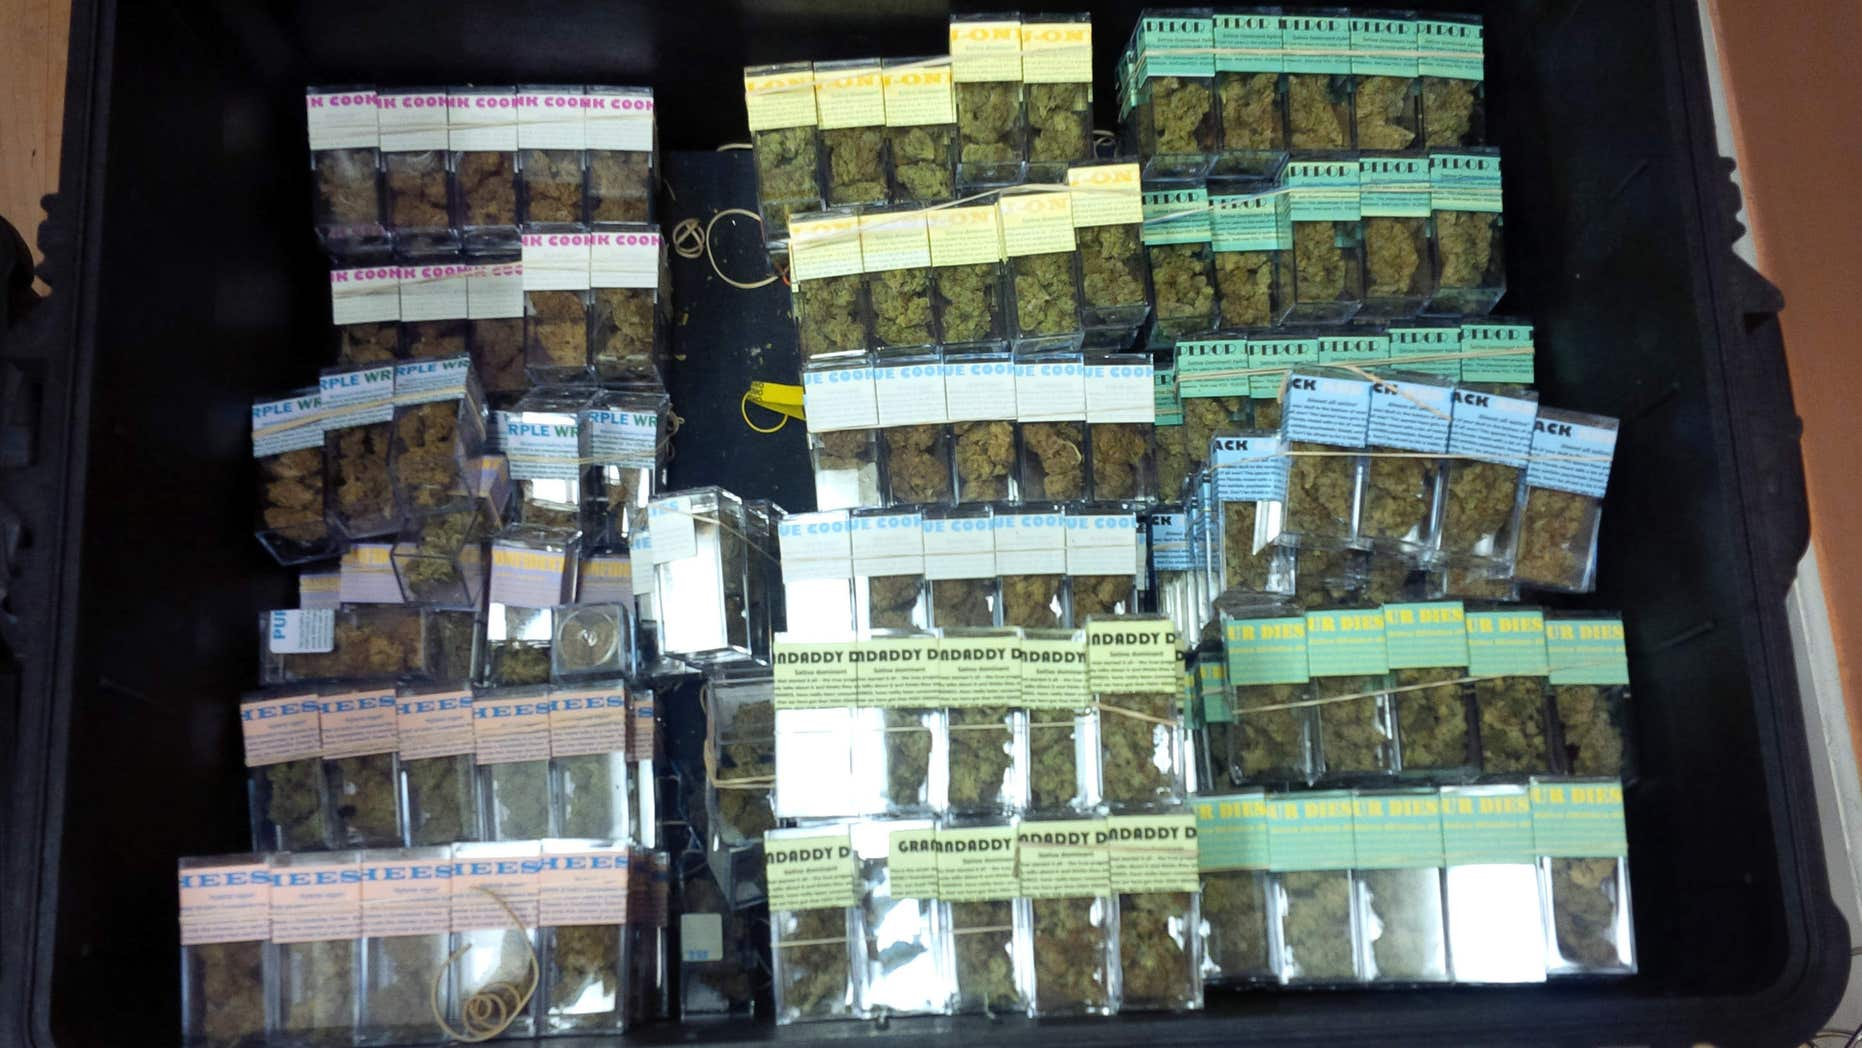 In this undated photo provided by the New York City Police Department, containers of packaged marijuana ready to be sold are shown inside a New York warehouse.